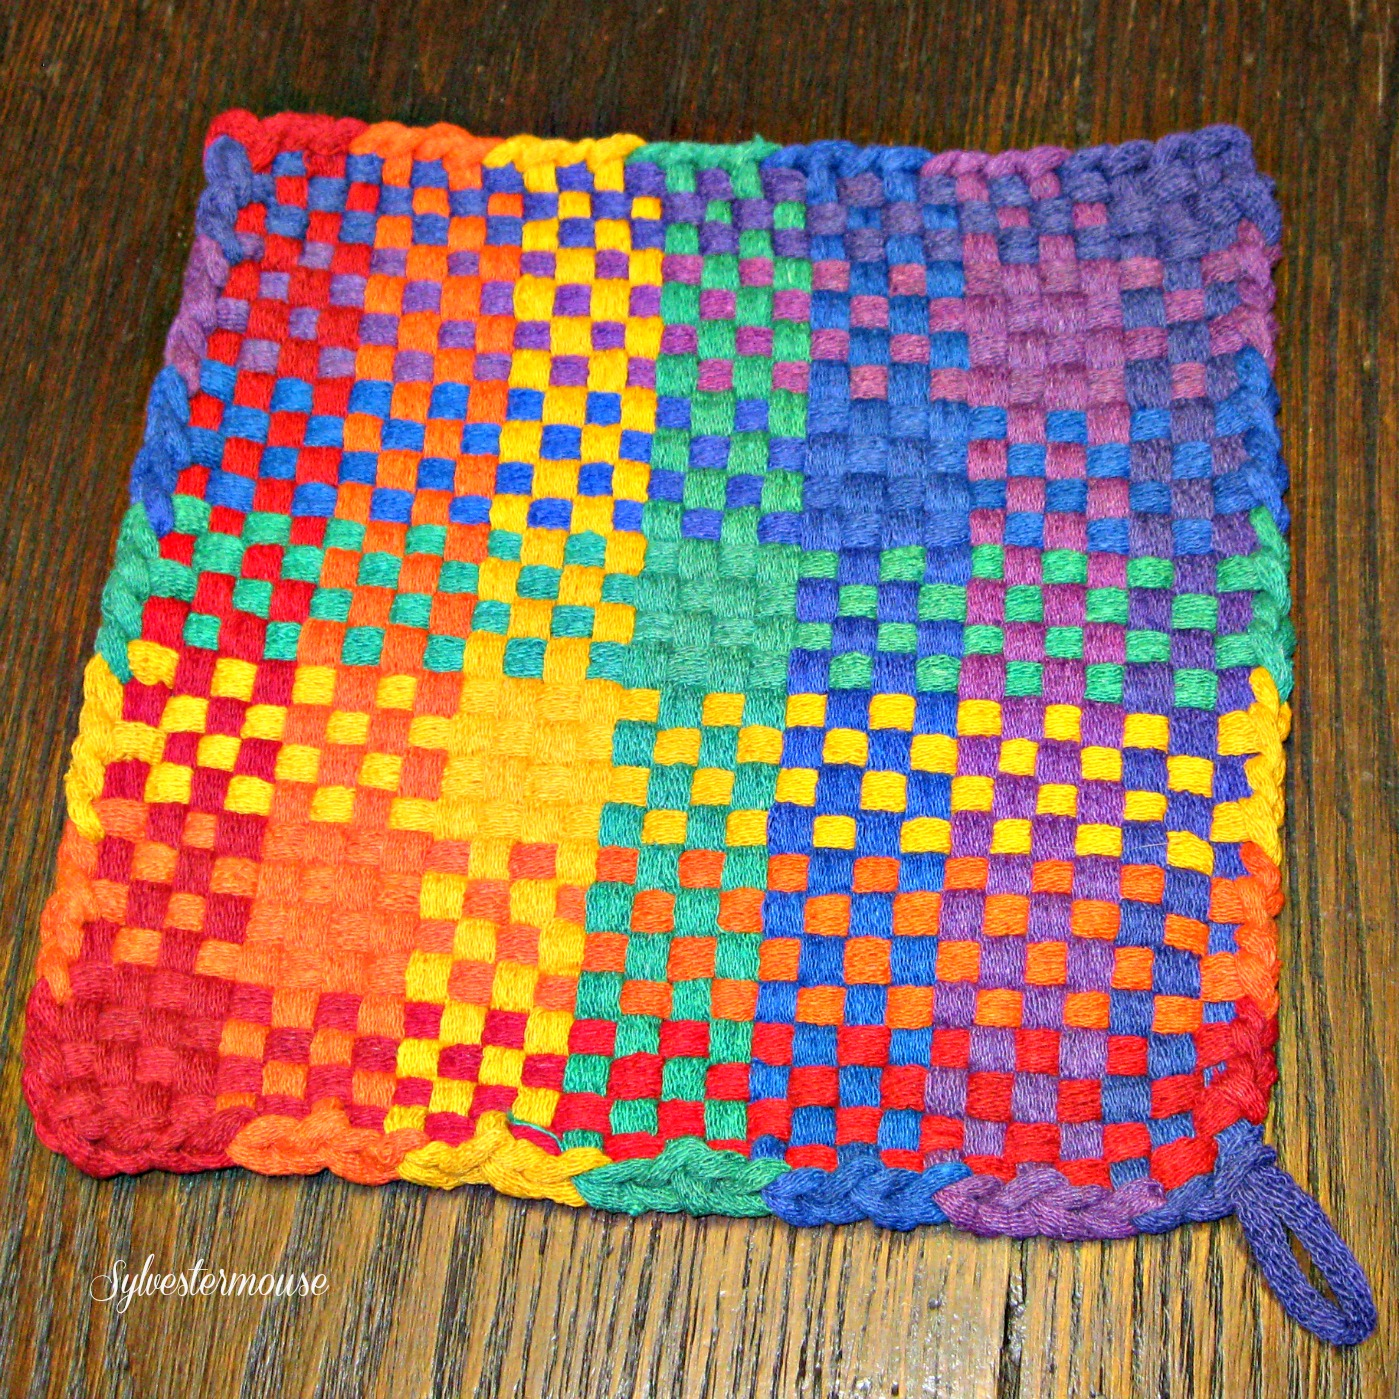 Potholder Pro Loom Kit - Large Potholder